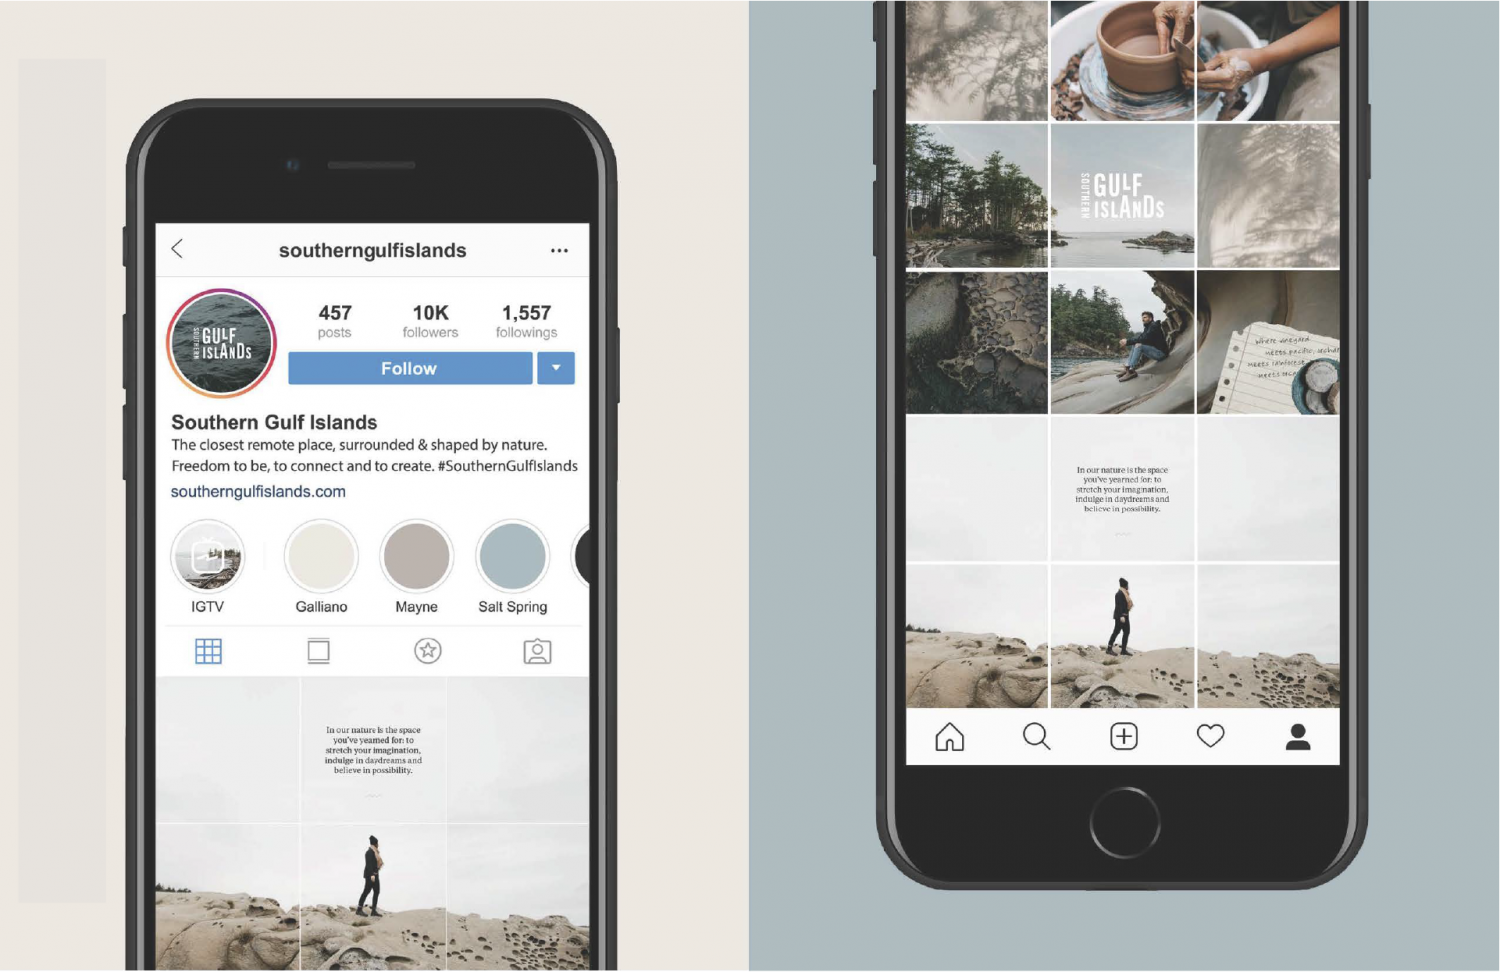 Southern Gulf Islands Instagram feed on iPhone mockup